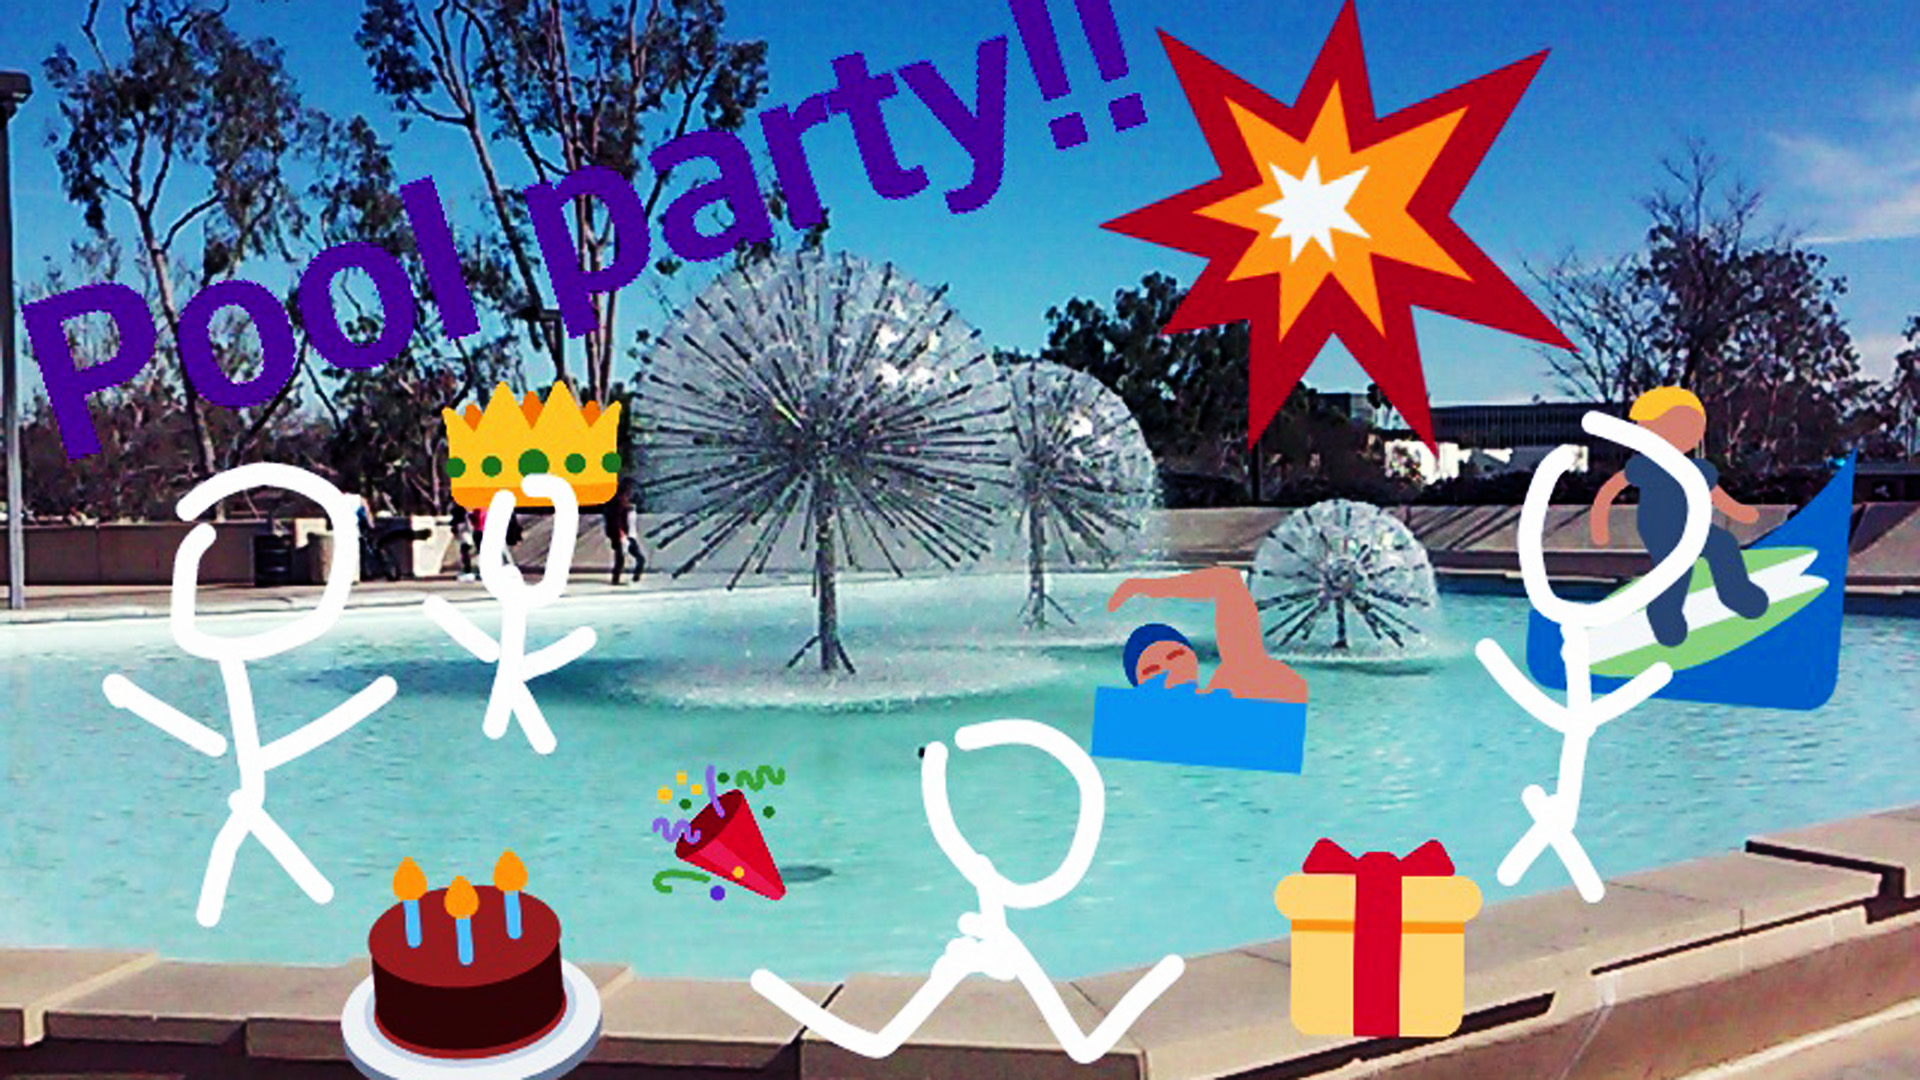 Snapchat drawing of the Brotman Hall fountain at CSULB as a pool party